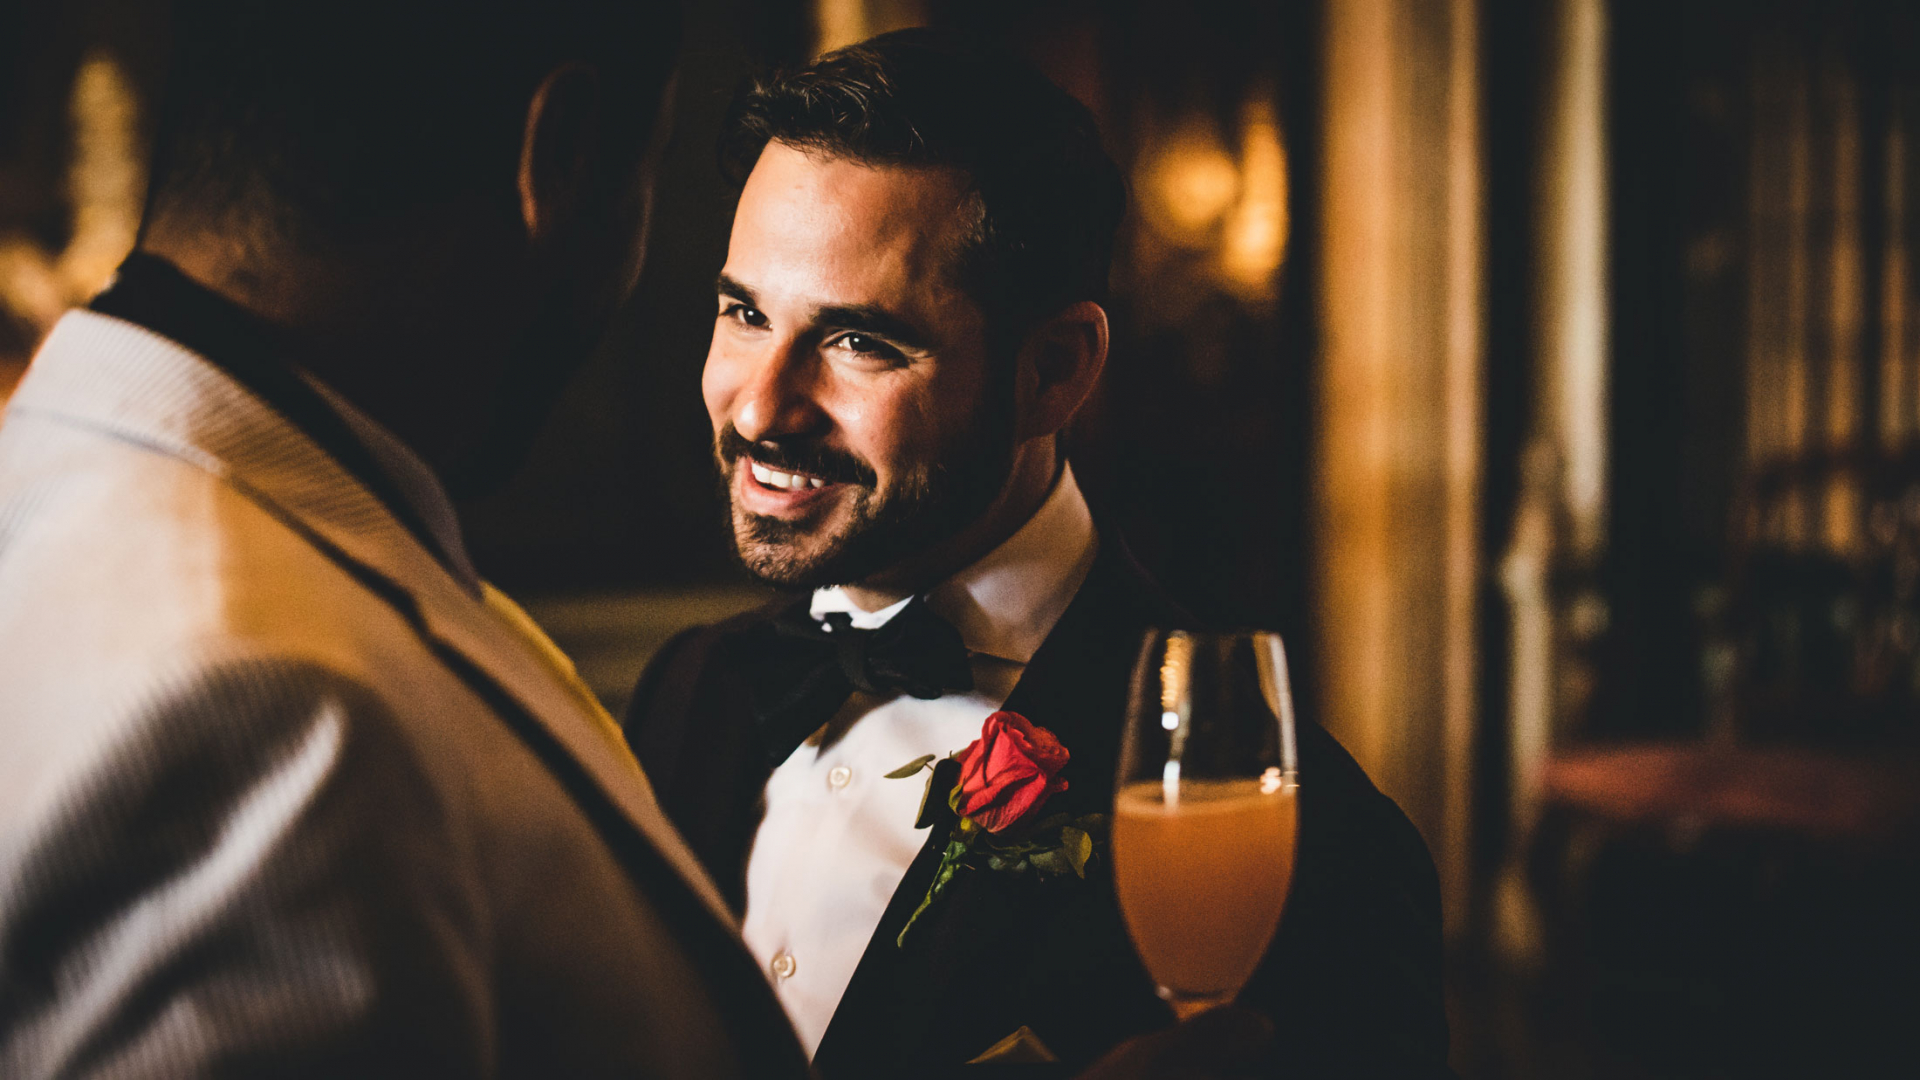 Cà Sagredo Wedding Image in Venice, Italy | The groom greets his wedding party with a smile